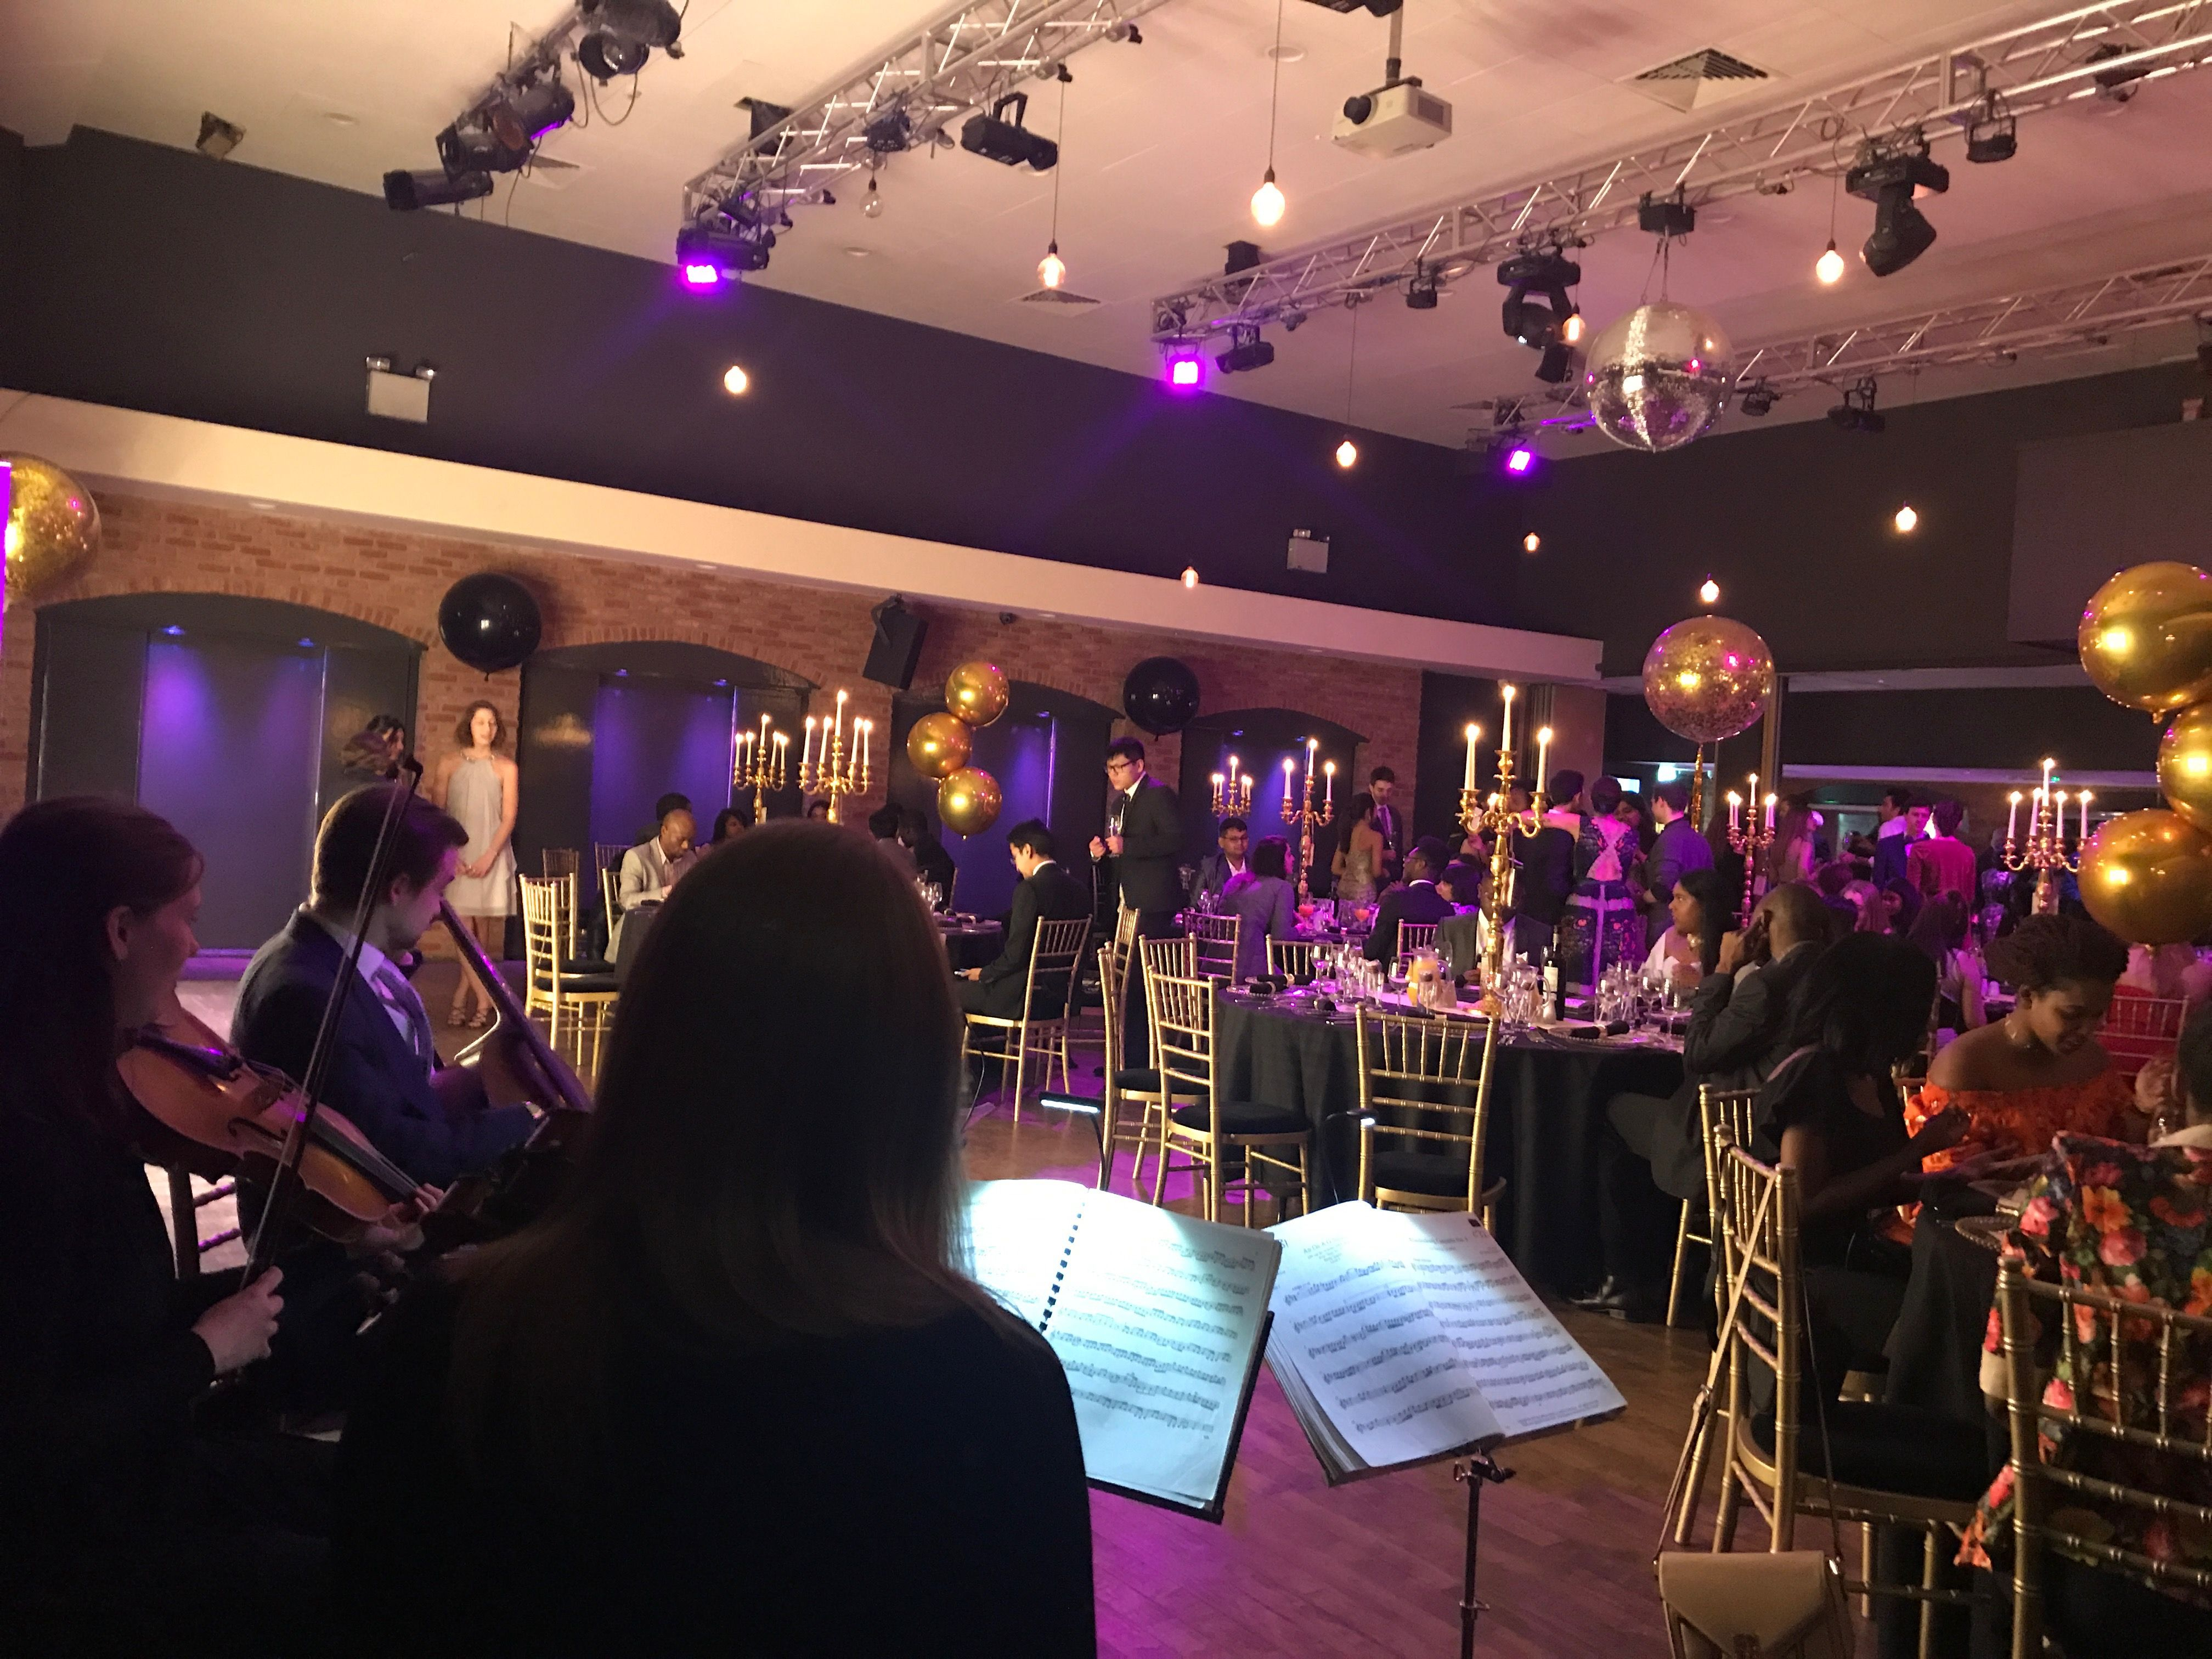 Playing for the lovely people of ISH in 229 The Venue #stringquartet #charitydinner #corporateeventLondon #229portlandplace #livedinnermusic #backgroundmusic